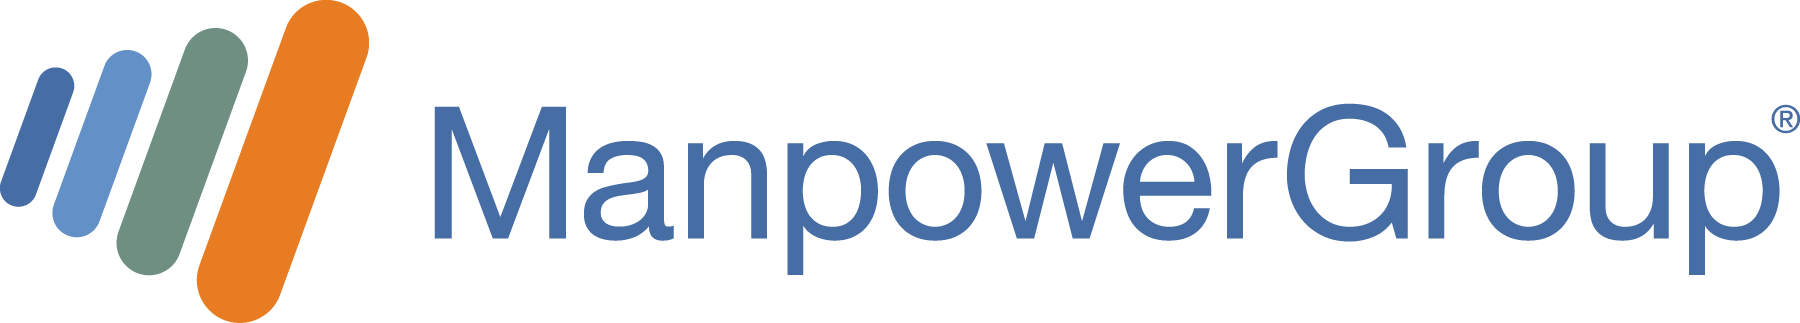 ManpowerGroup Web Horizontal Logo for Light Background